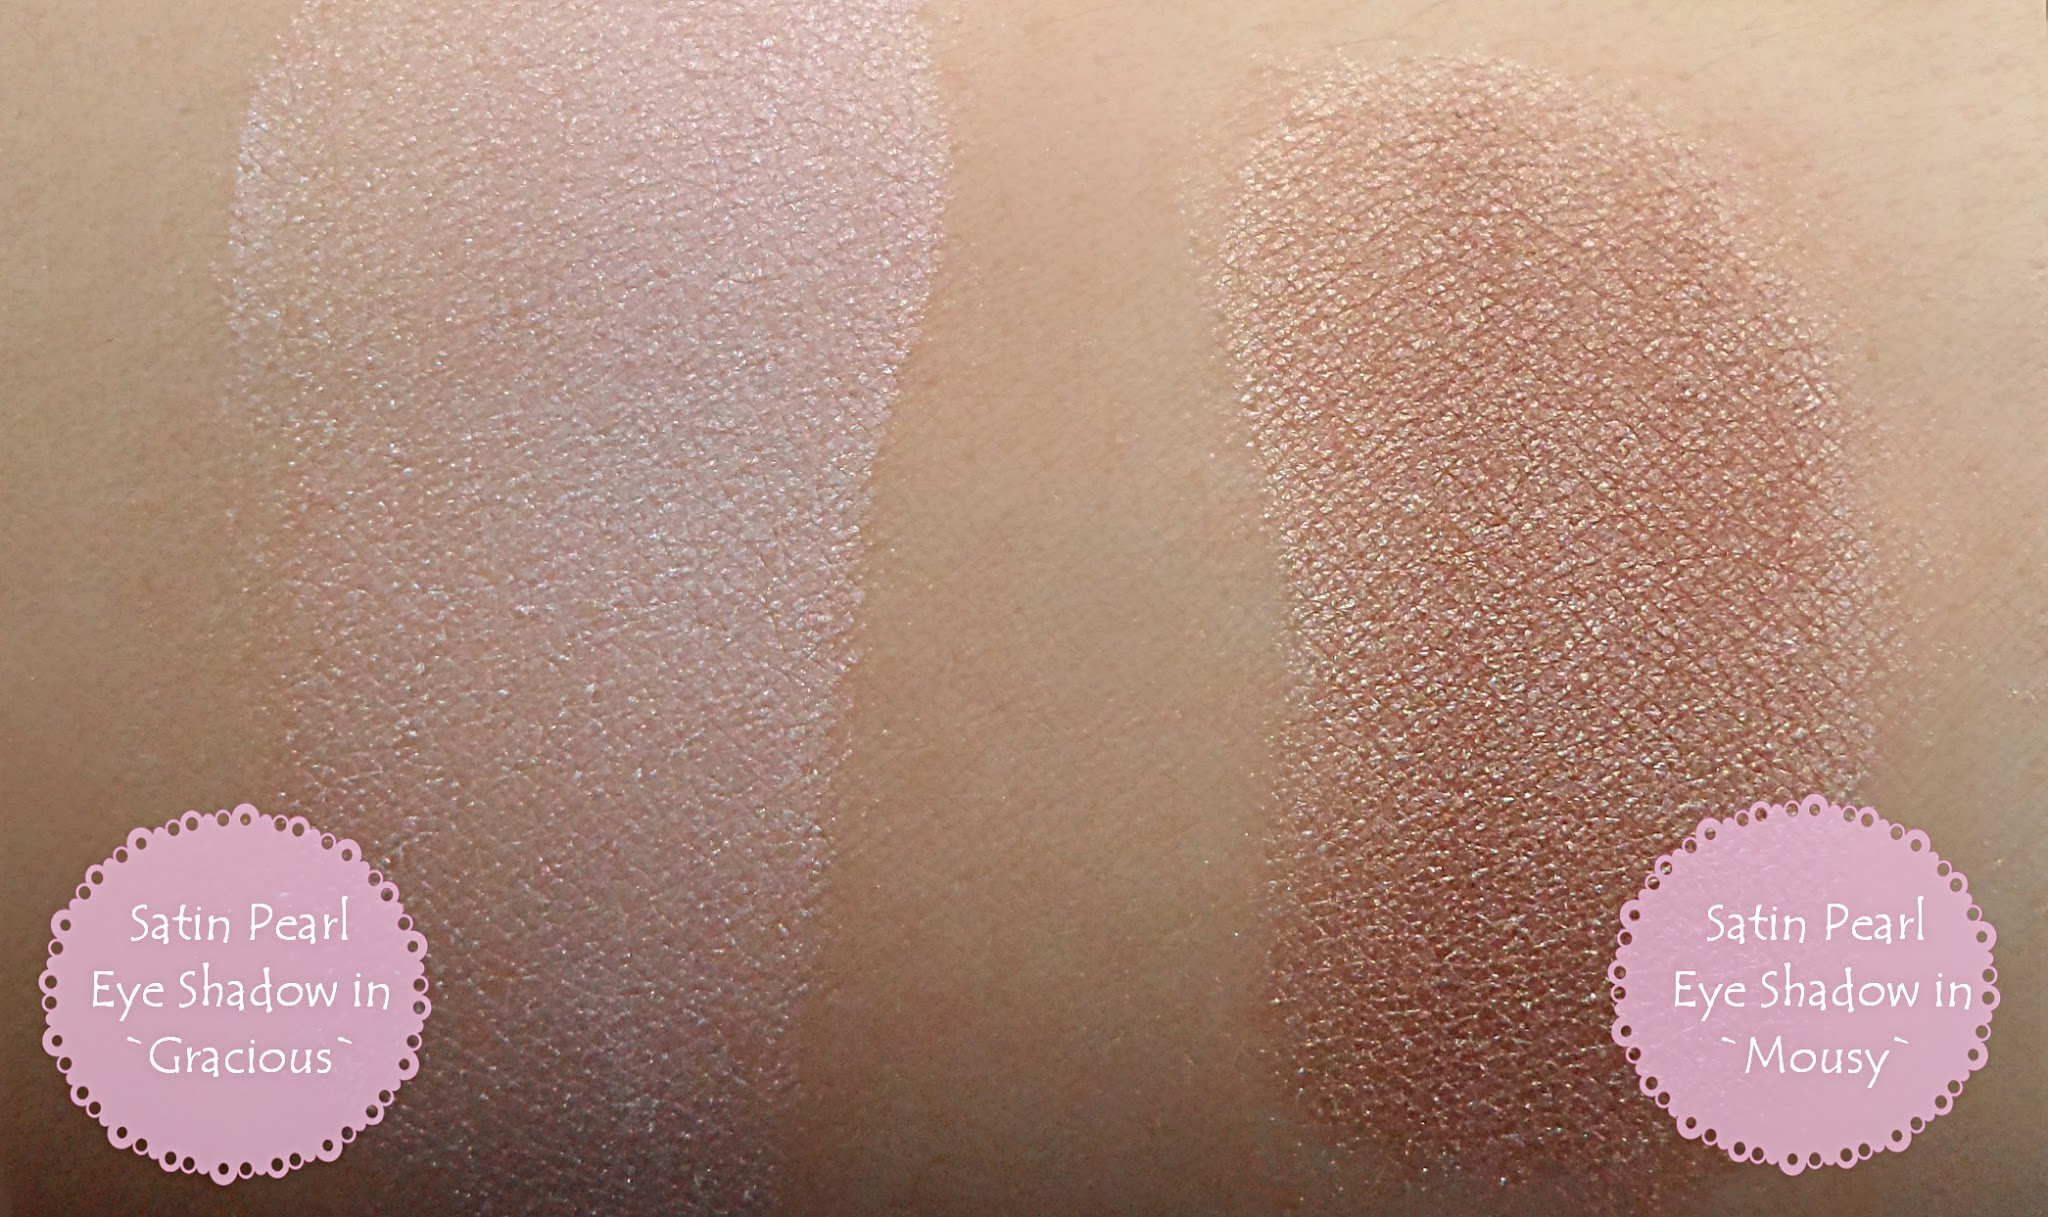 Buff`d Mineral eye shadows gracious mousy Review Swatches pictures samples